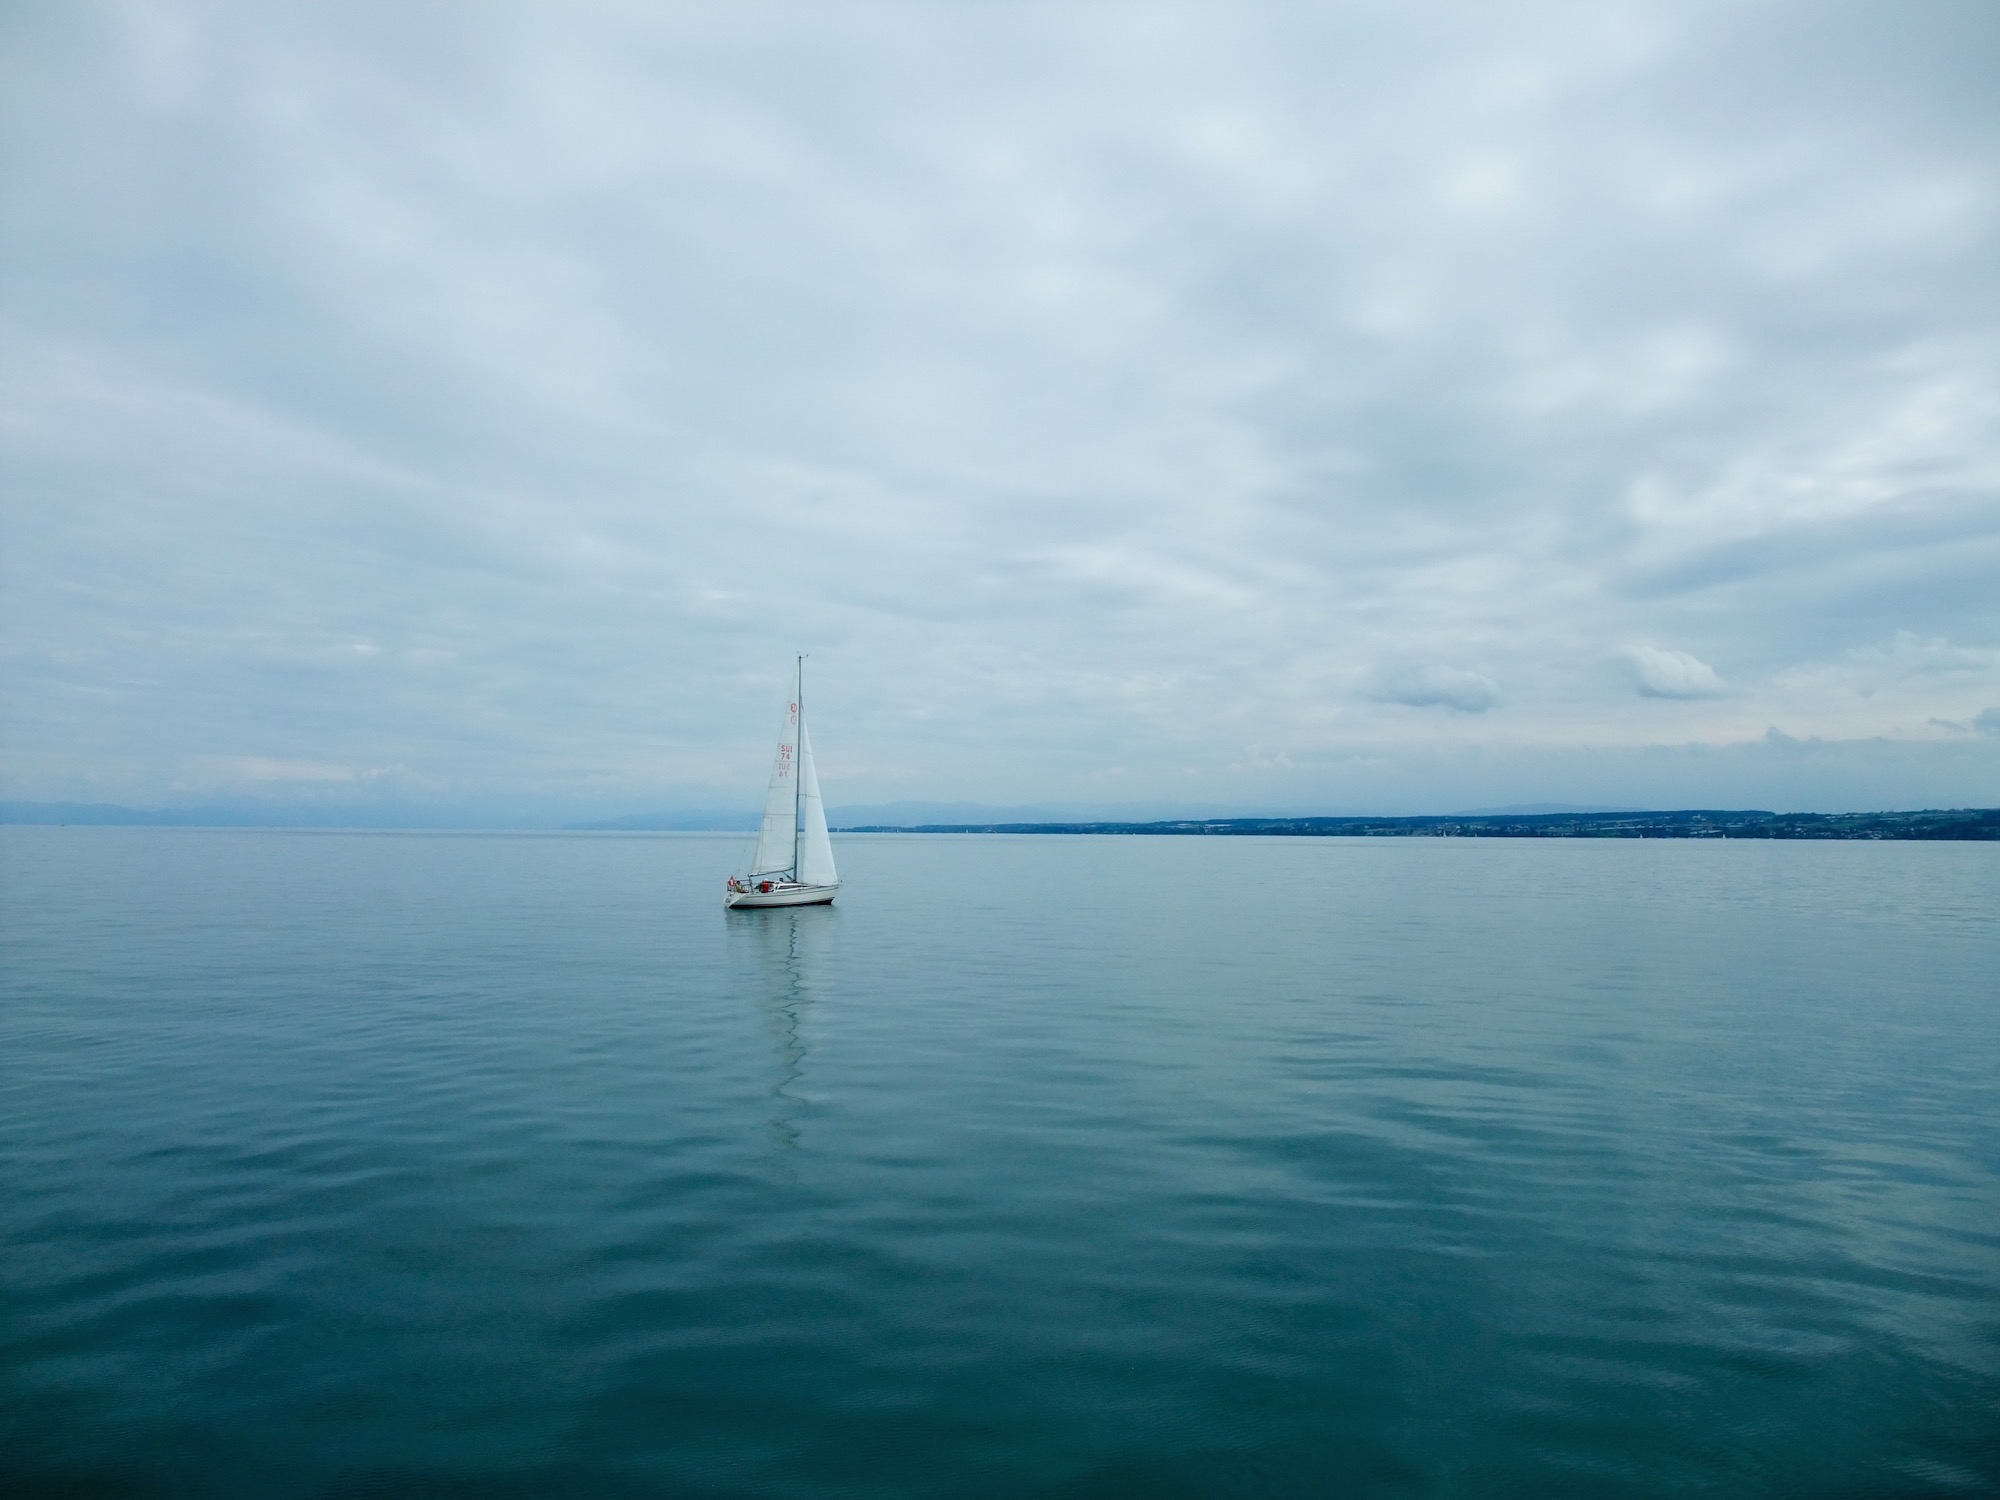 The  Bodensee with a view of the Swiss Alps in the background